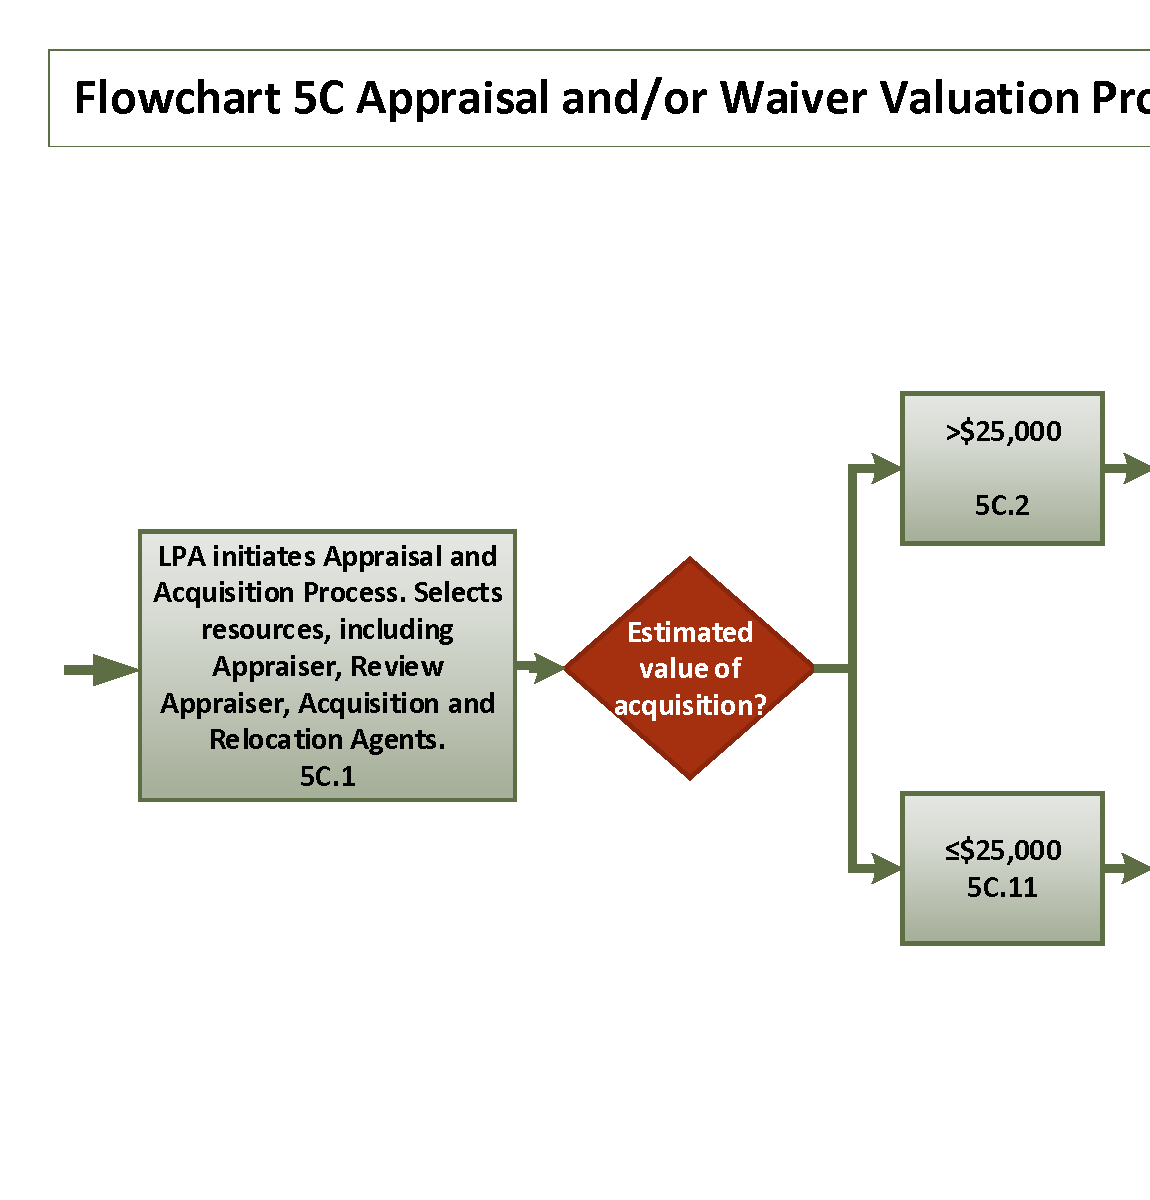 Flowchart 5C: Appraisal And/or Waiver Valuation Process